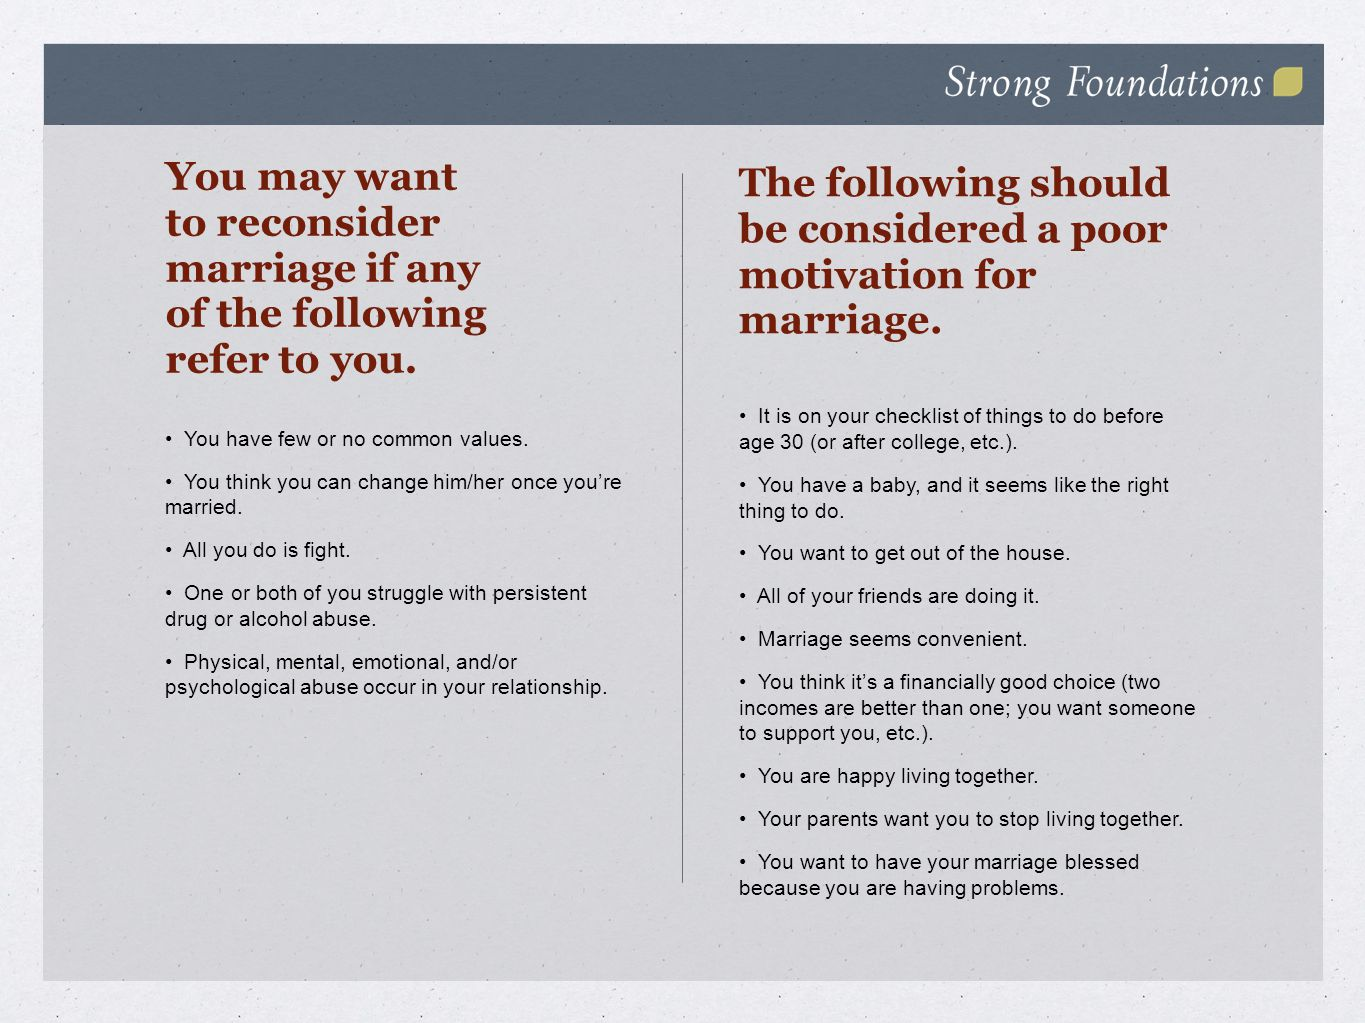 You may want to reconsider marriage if any of the following refer to you.